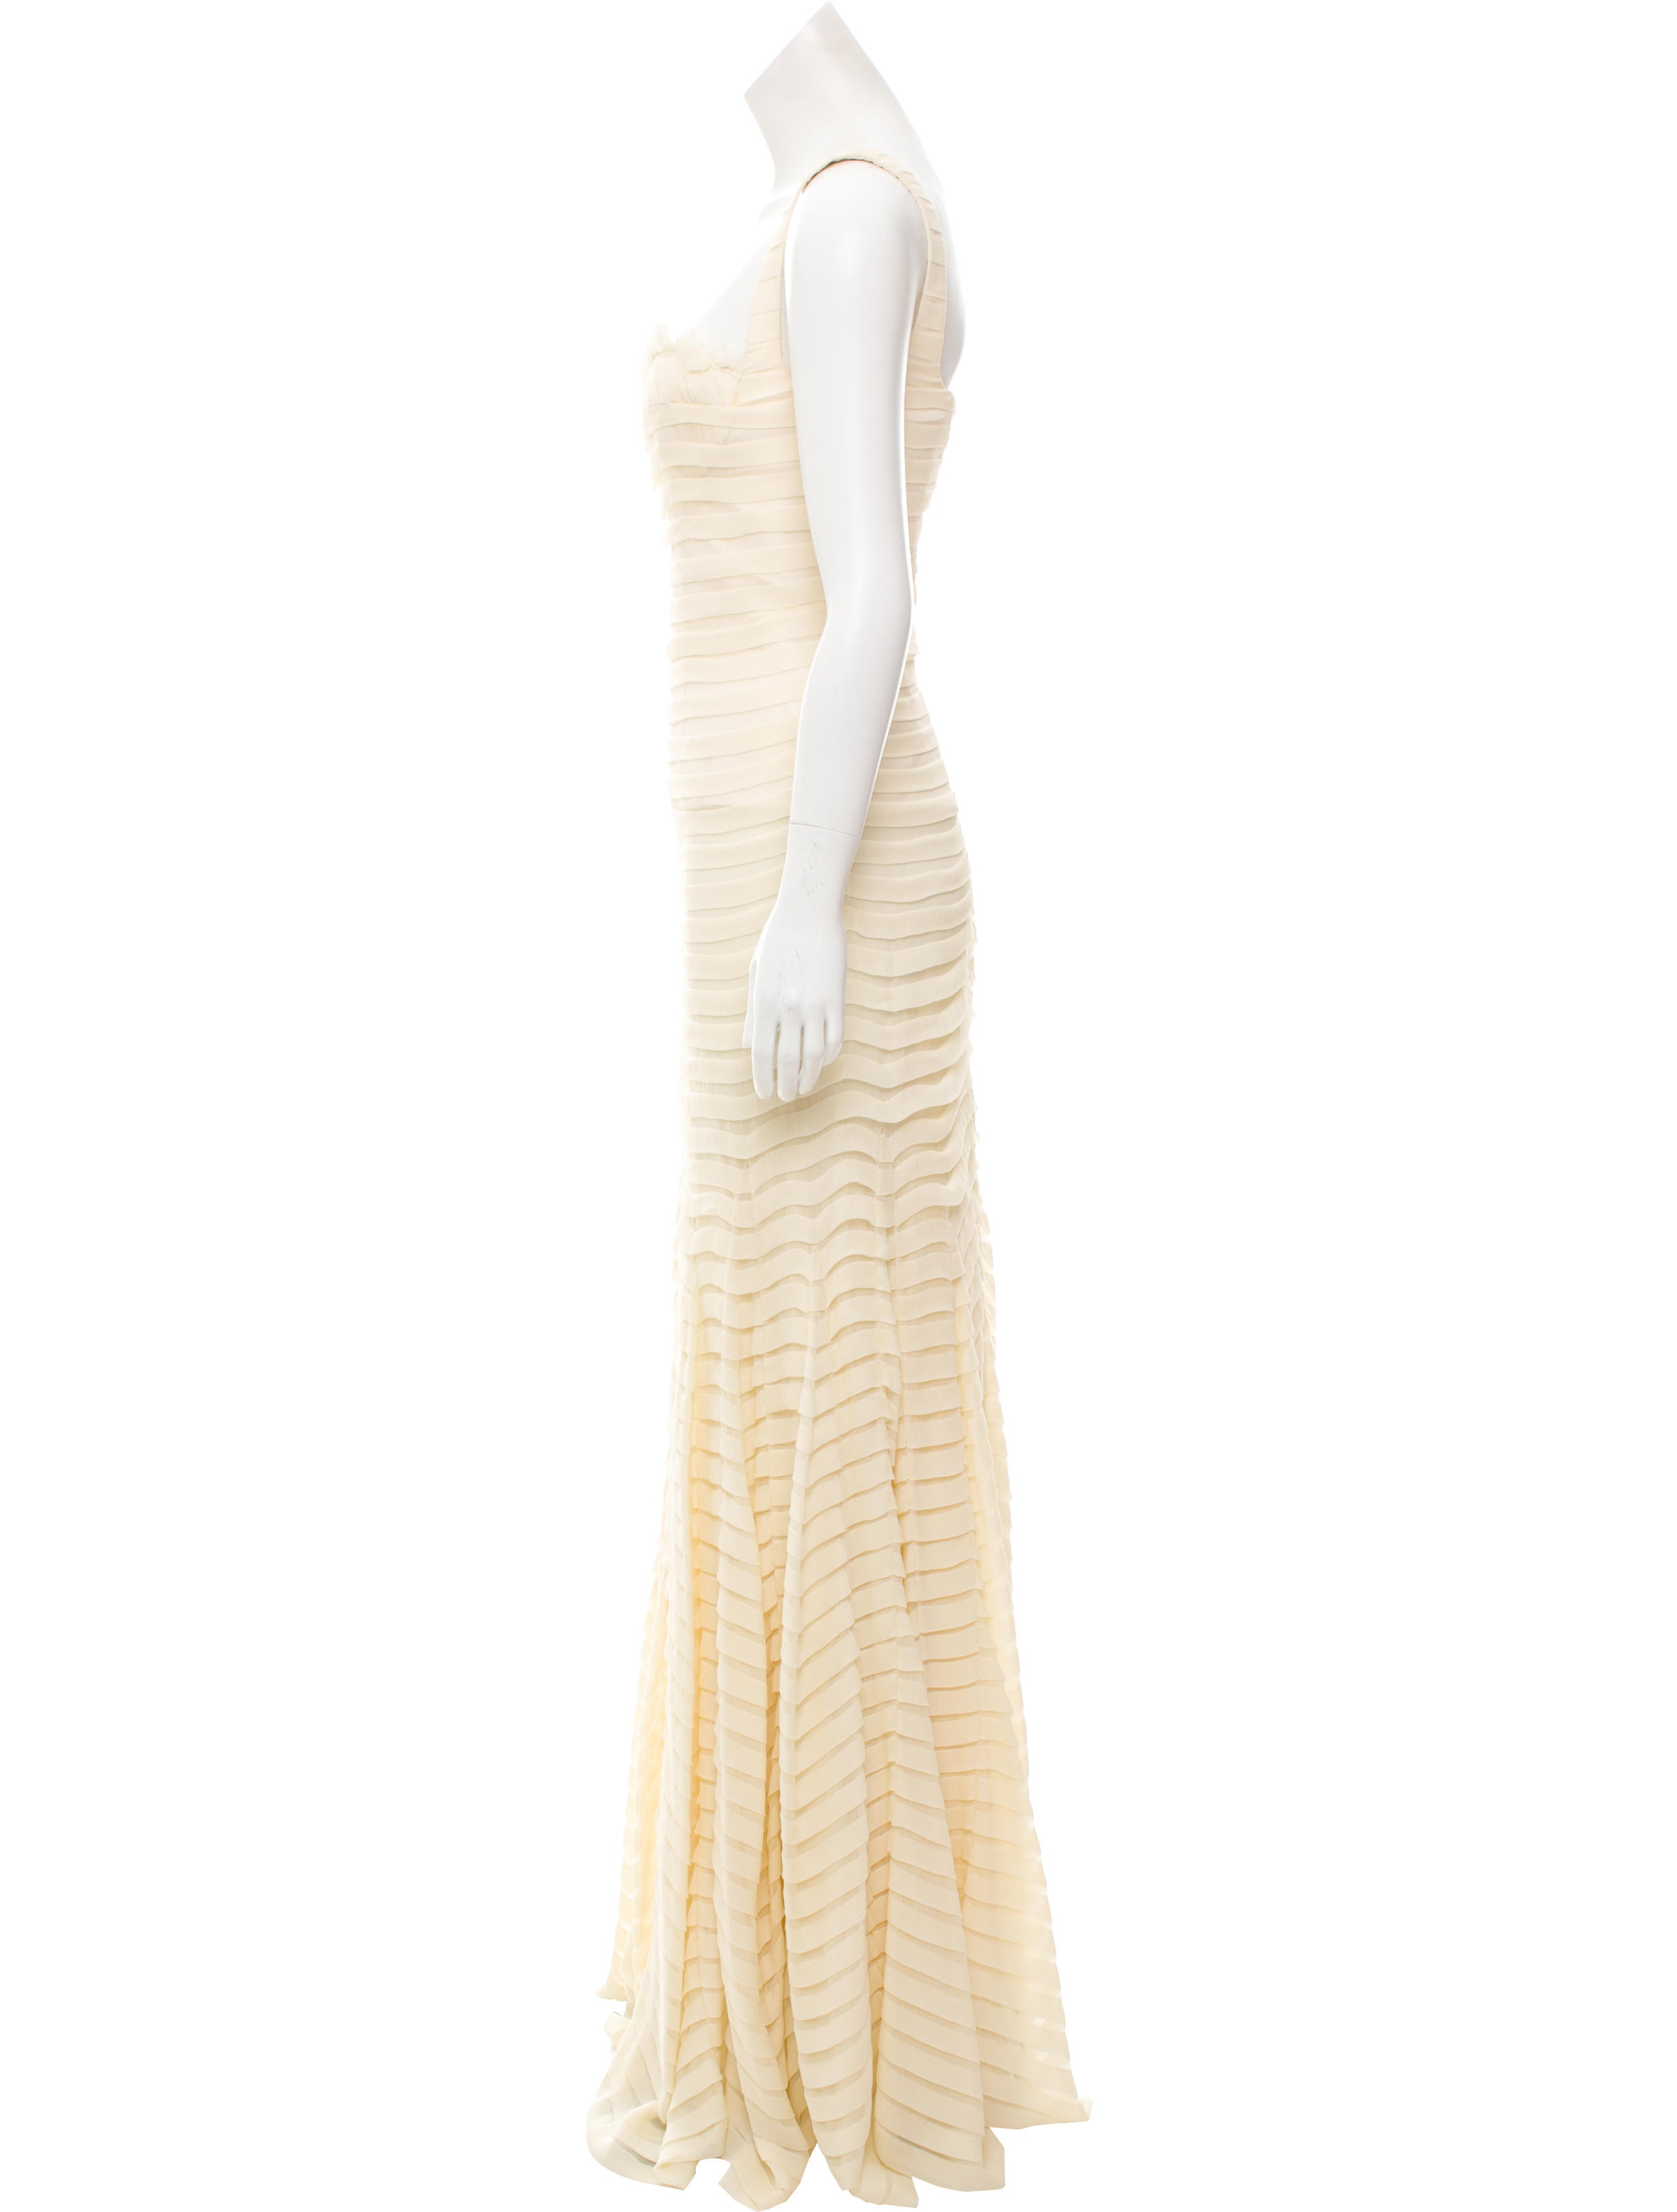 Alexander McQueen Silk Pleated Gown - Clothing - ALE50065 | The RealReal